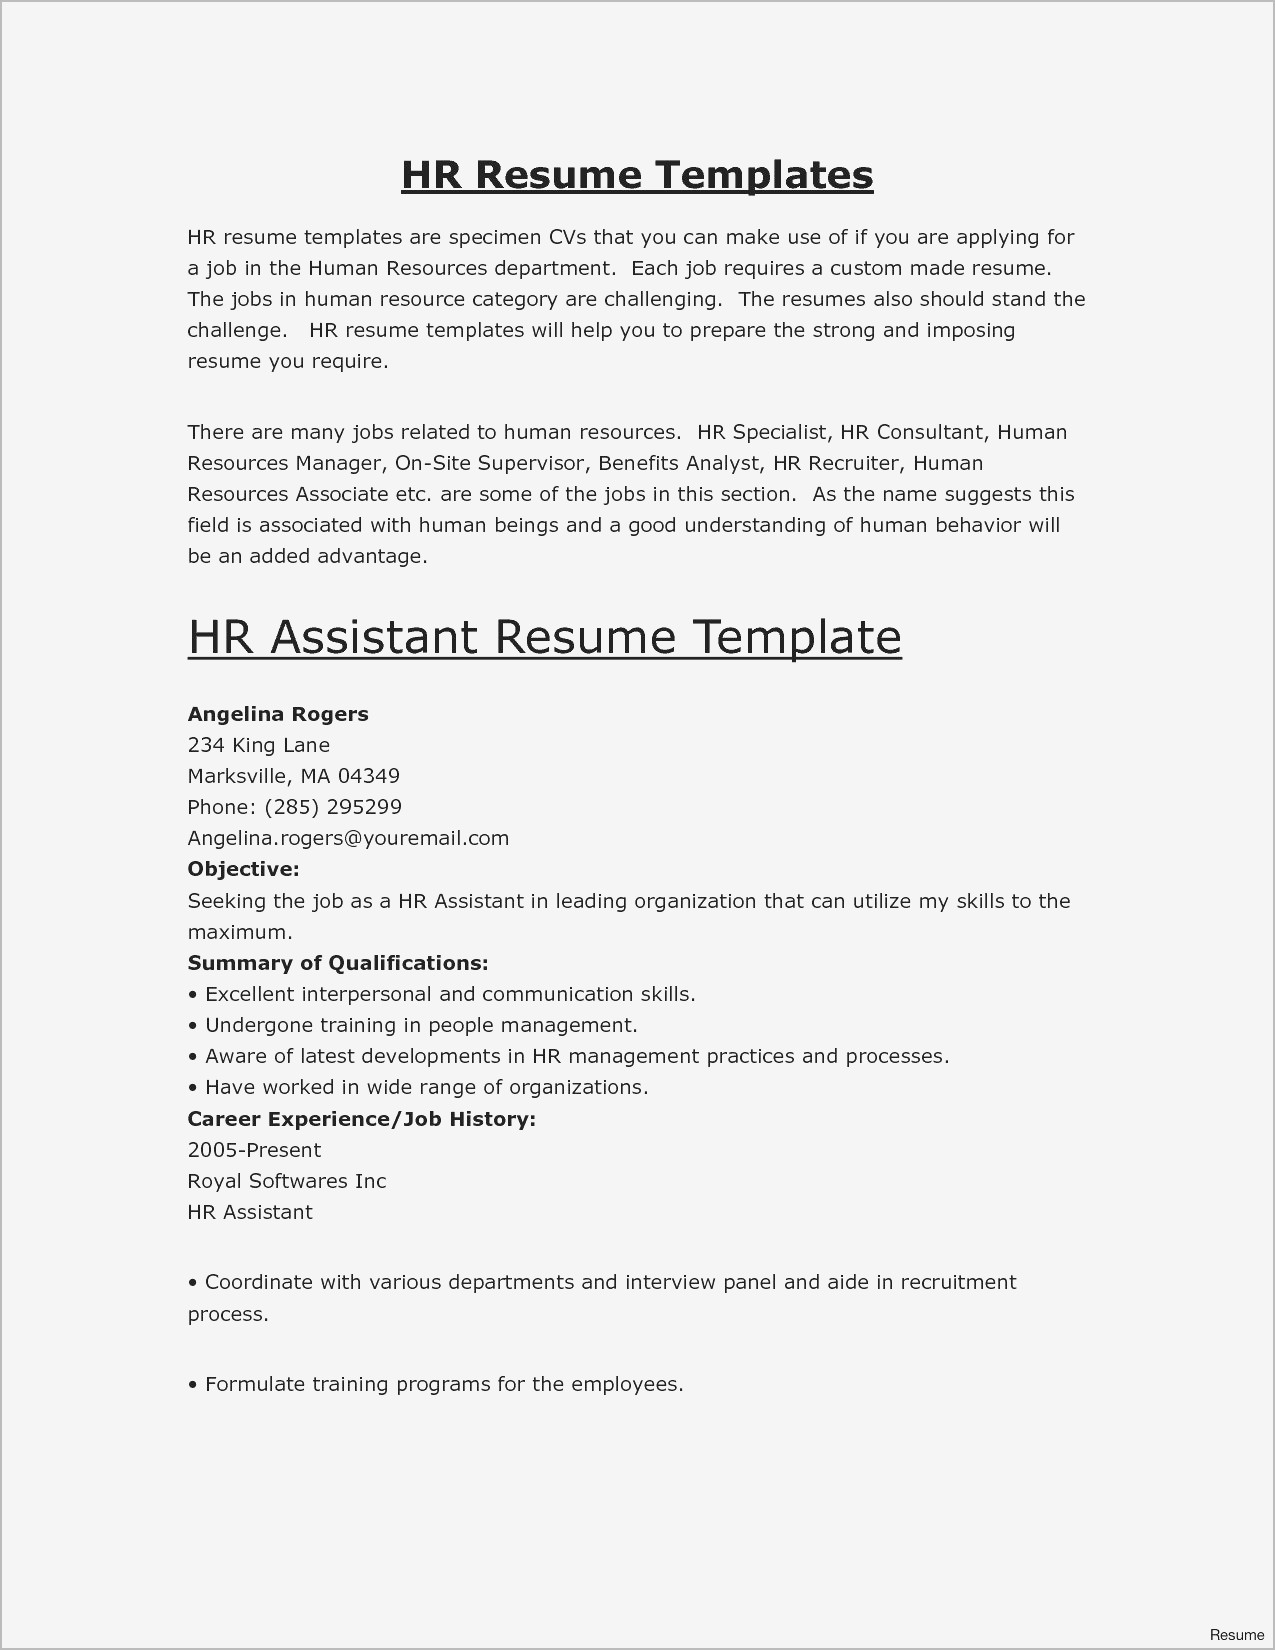 Best Resume Sites - Keywords for Resumes Unique Keywords for Resumes Best Resume